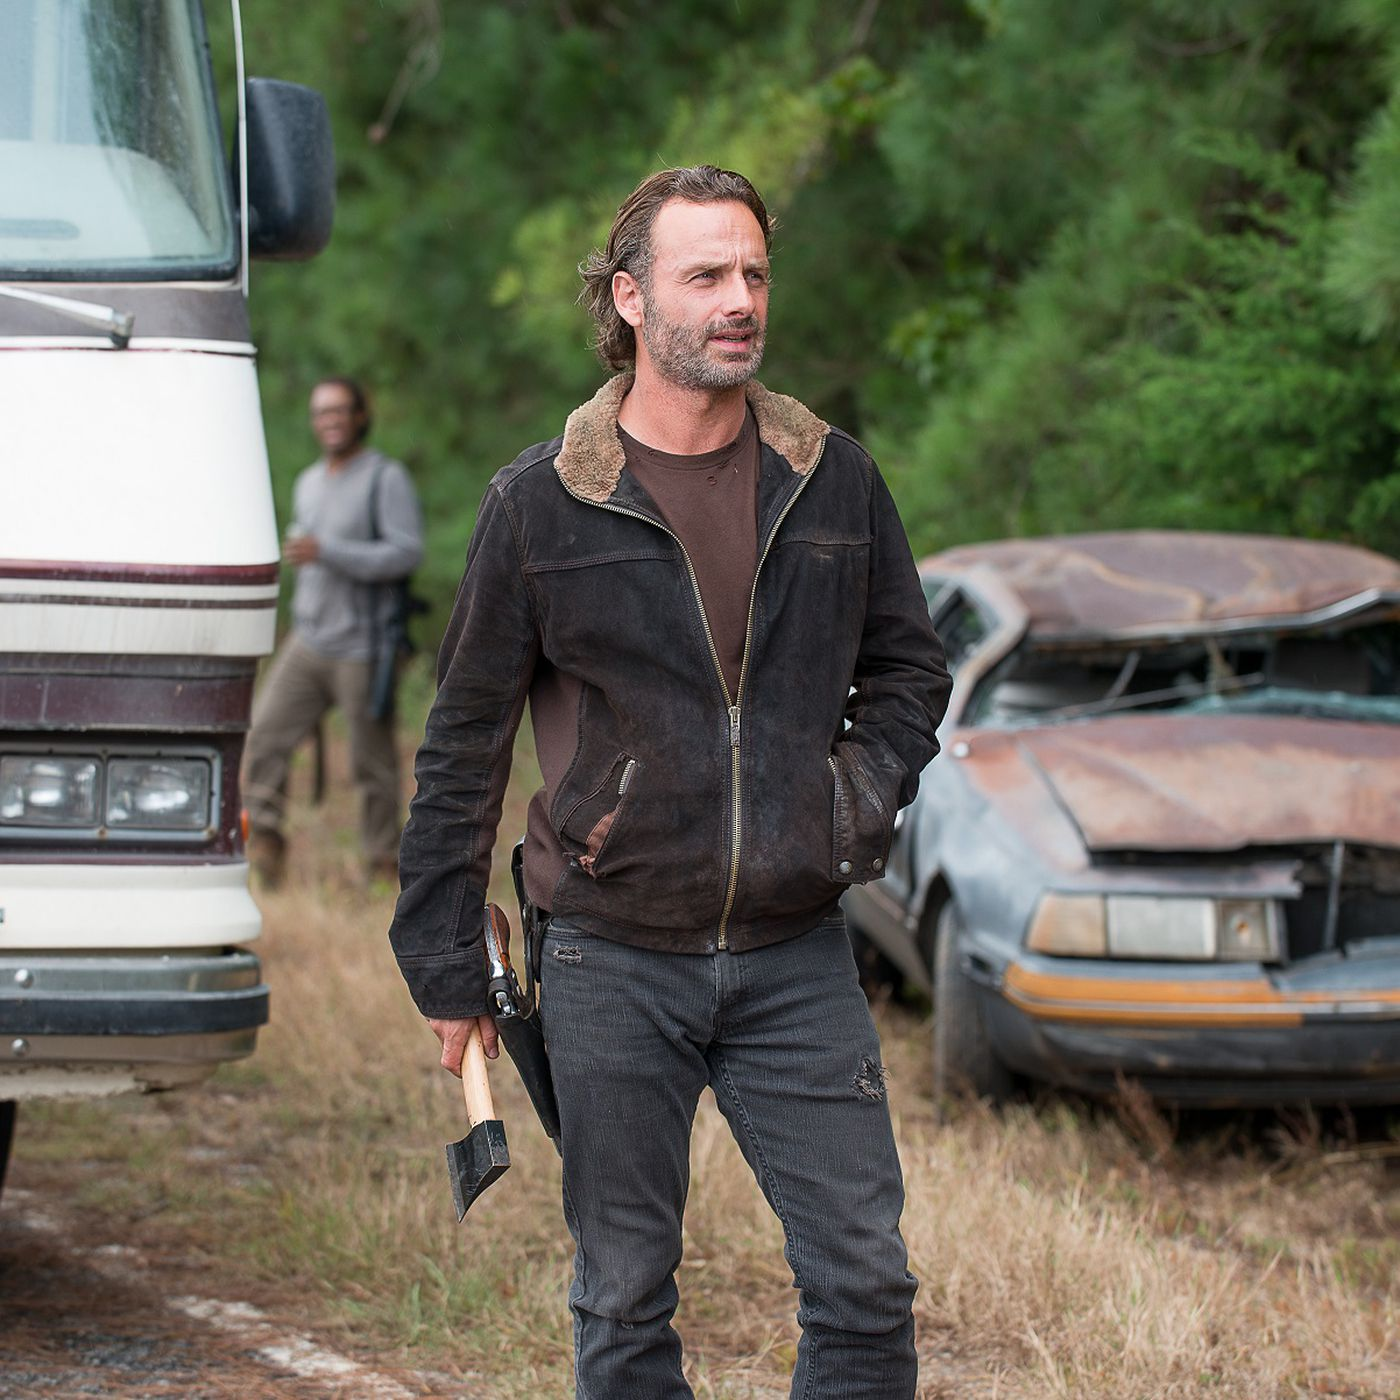 The Walking Dead Season 6 Episode 12 5 Things That Made This The